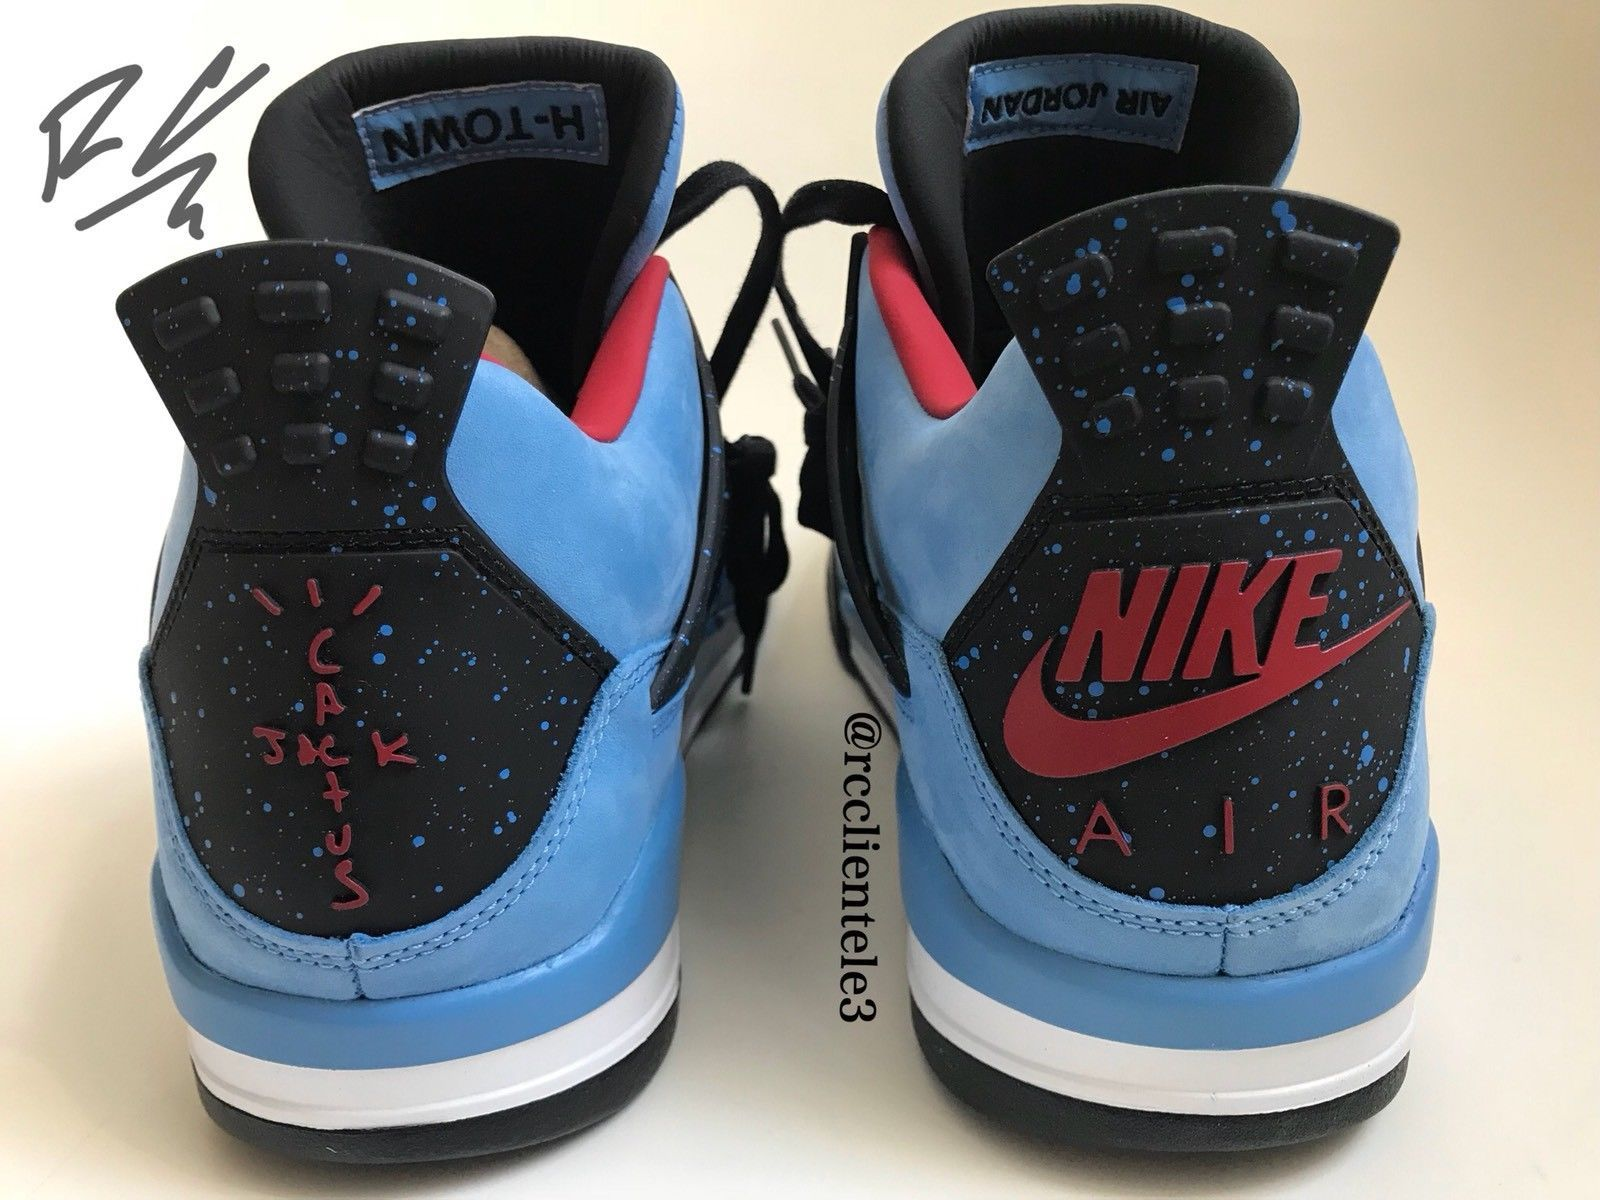 2c262373d08 NIKE AIR JORDAN IV 4 RETRO US 12 TRAVIS SCOTT PROMO SAMPLE F F CACTUS JACK